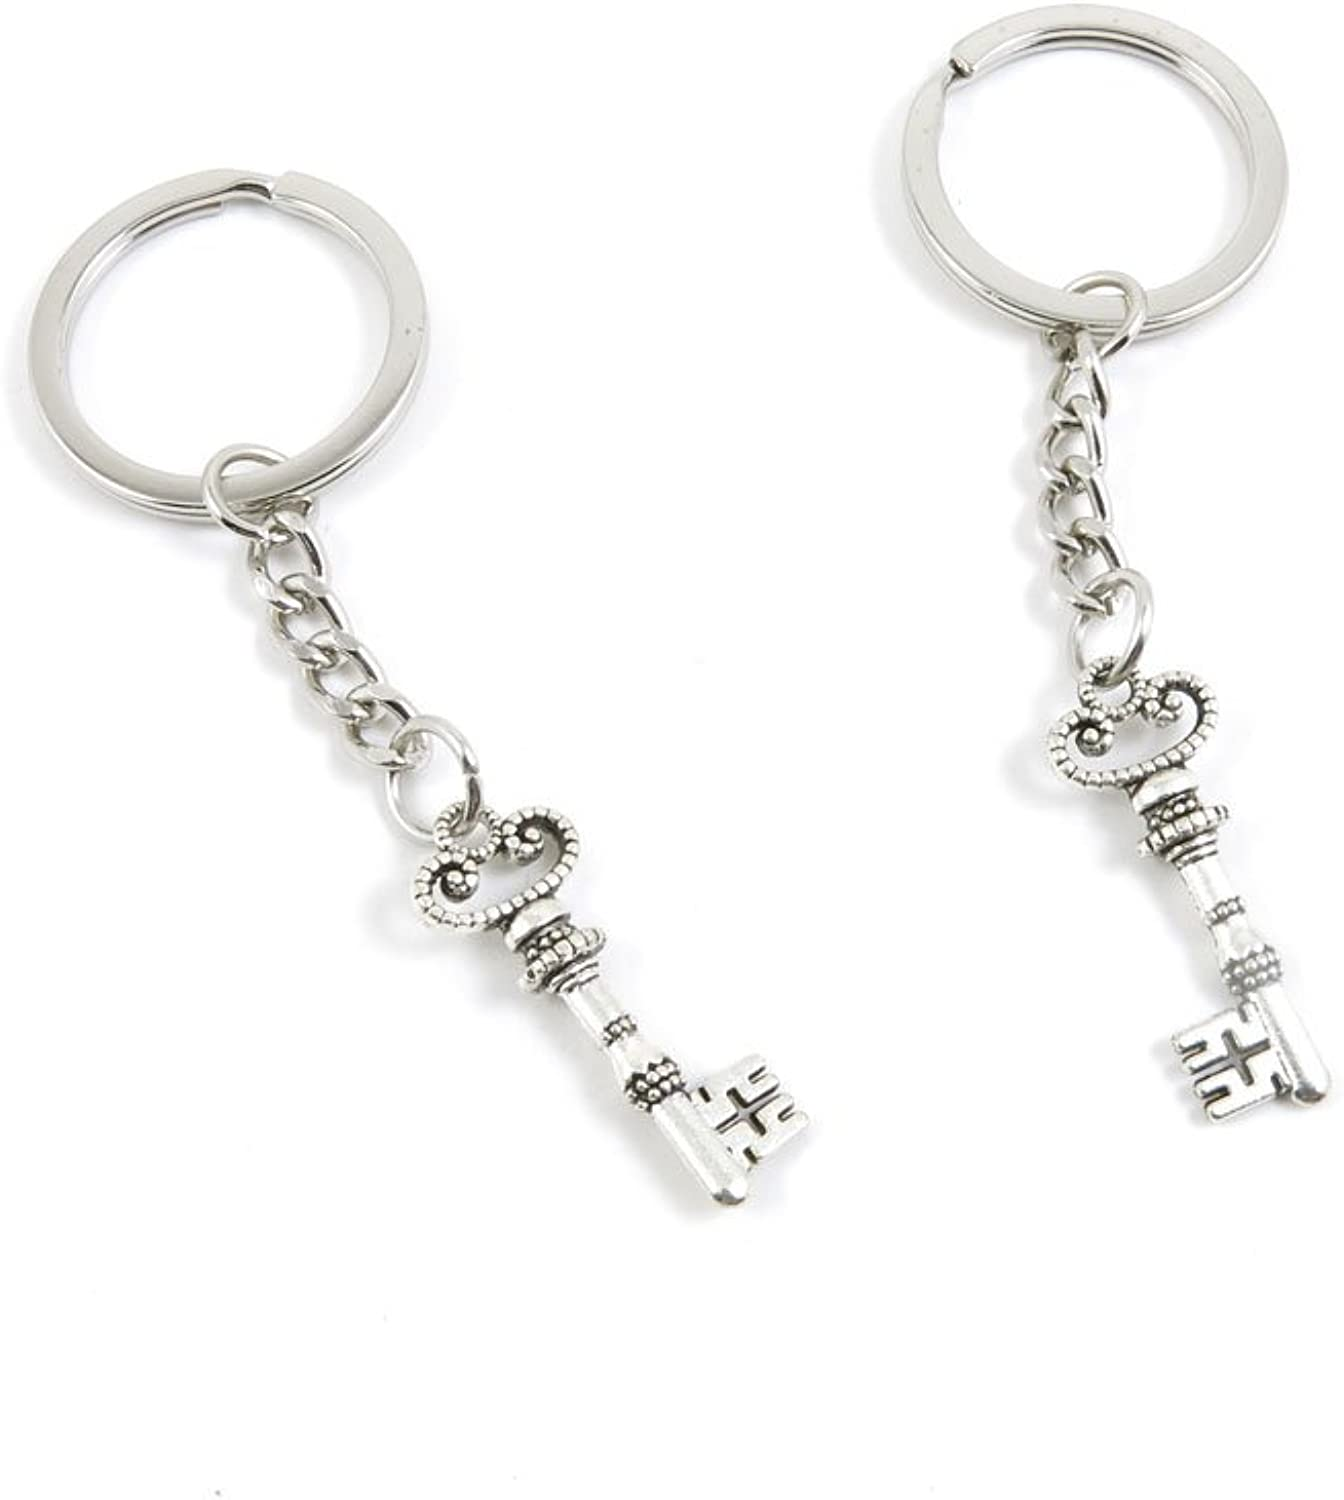 100 Pieces Keychain Keyring Door Car Key Chain Ring Tag Charms Bulk Supply Jewelry Making Clasp Findings D2XW4Z Magic Skeleton Key